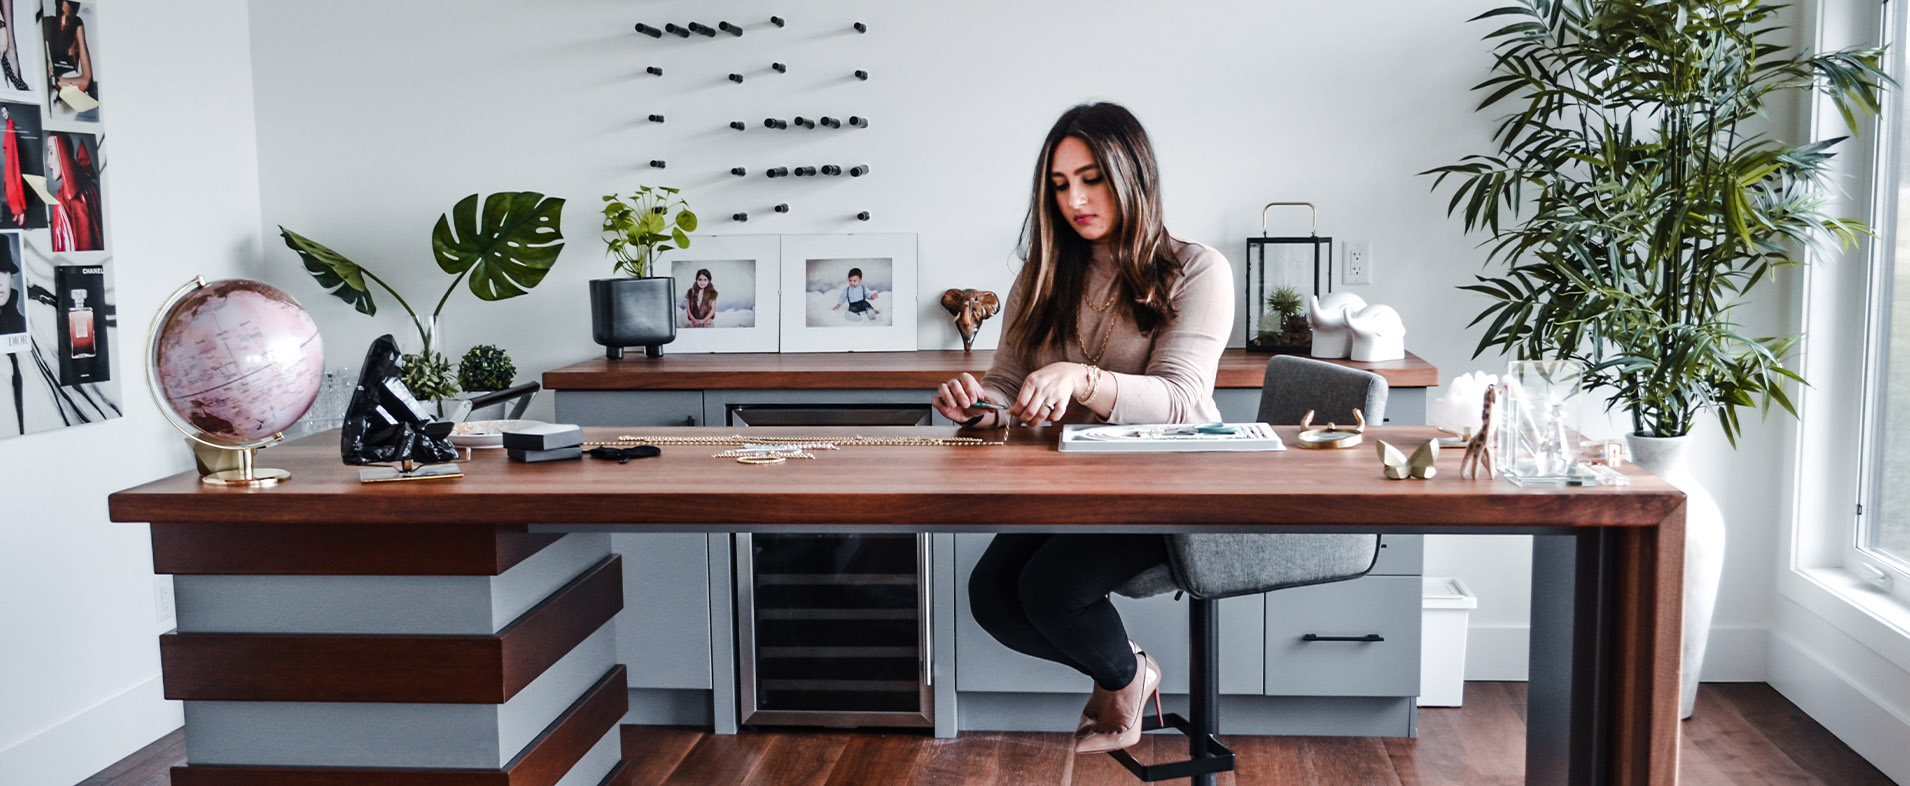 A girl working on her Jewelry Design